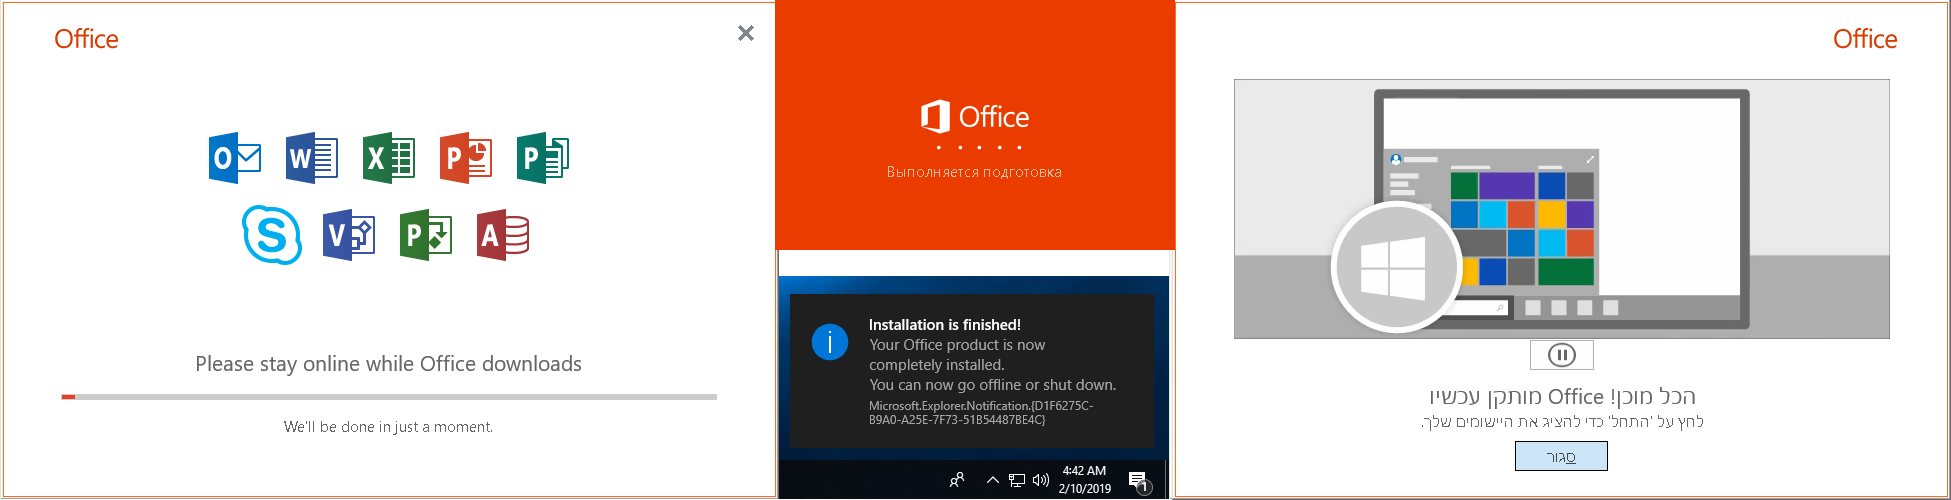 office language pack not installing